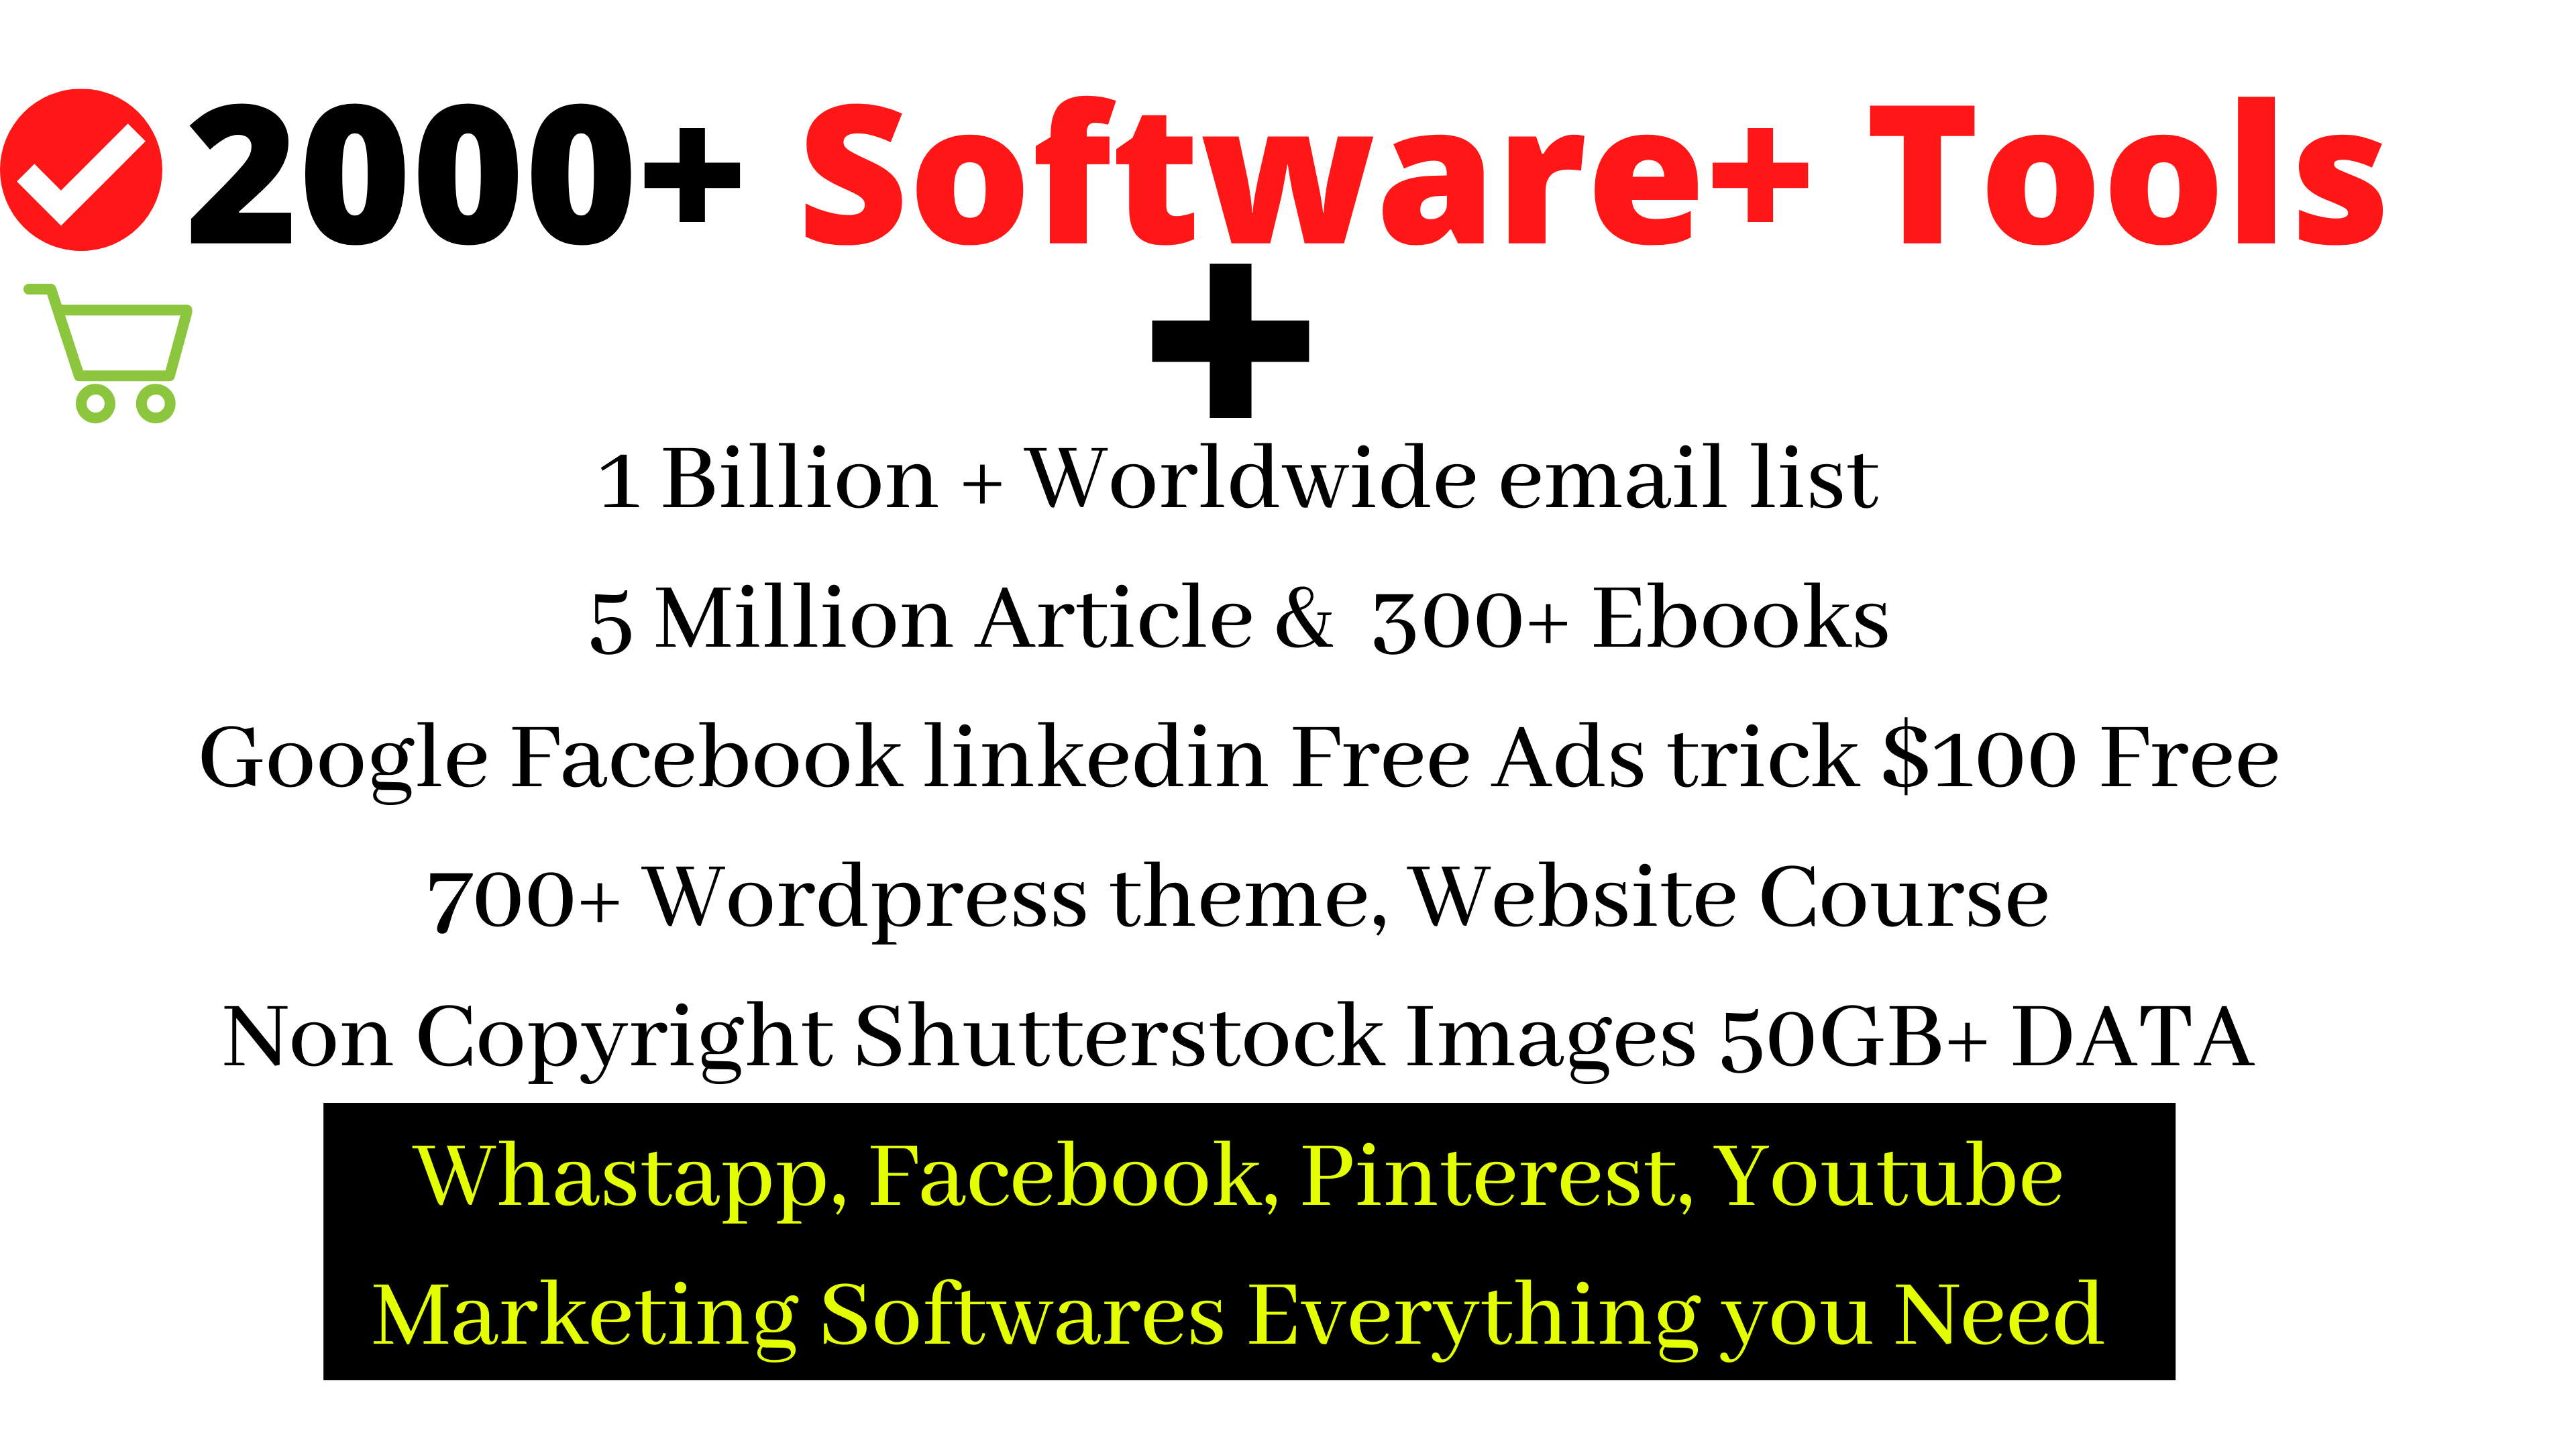 2000+ Software Marketing Tools Emails Images Everything You Need